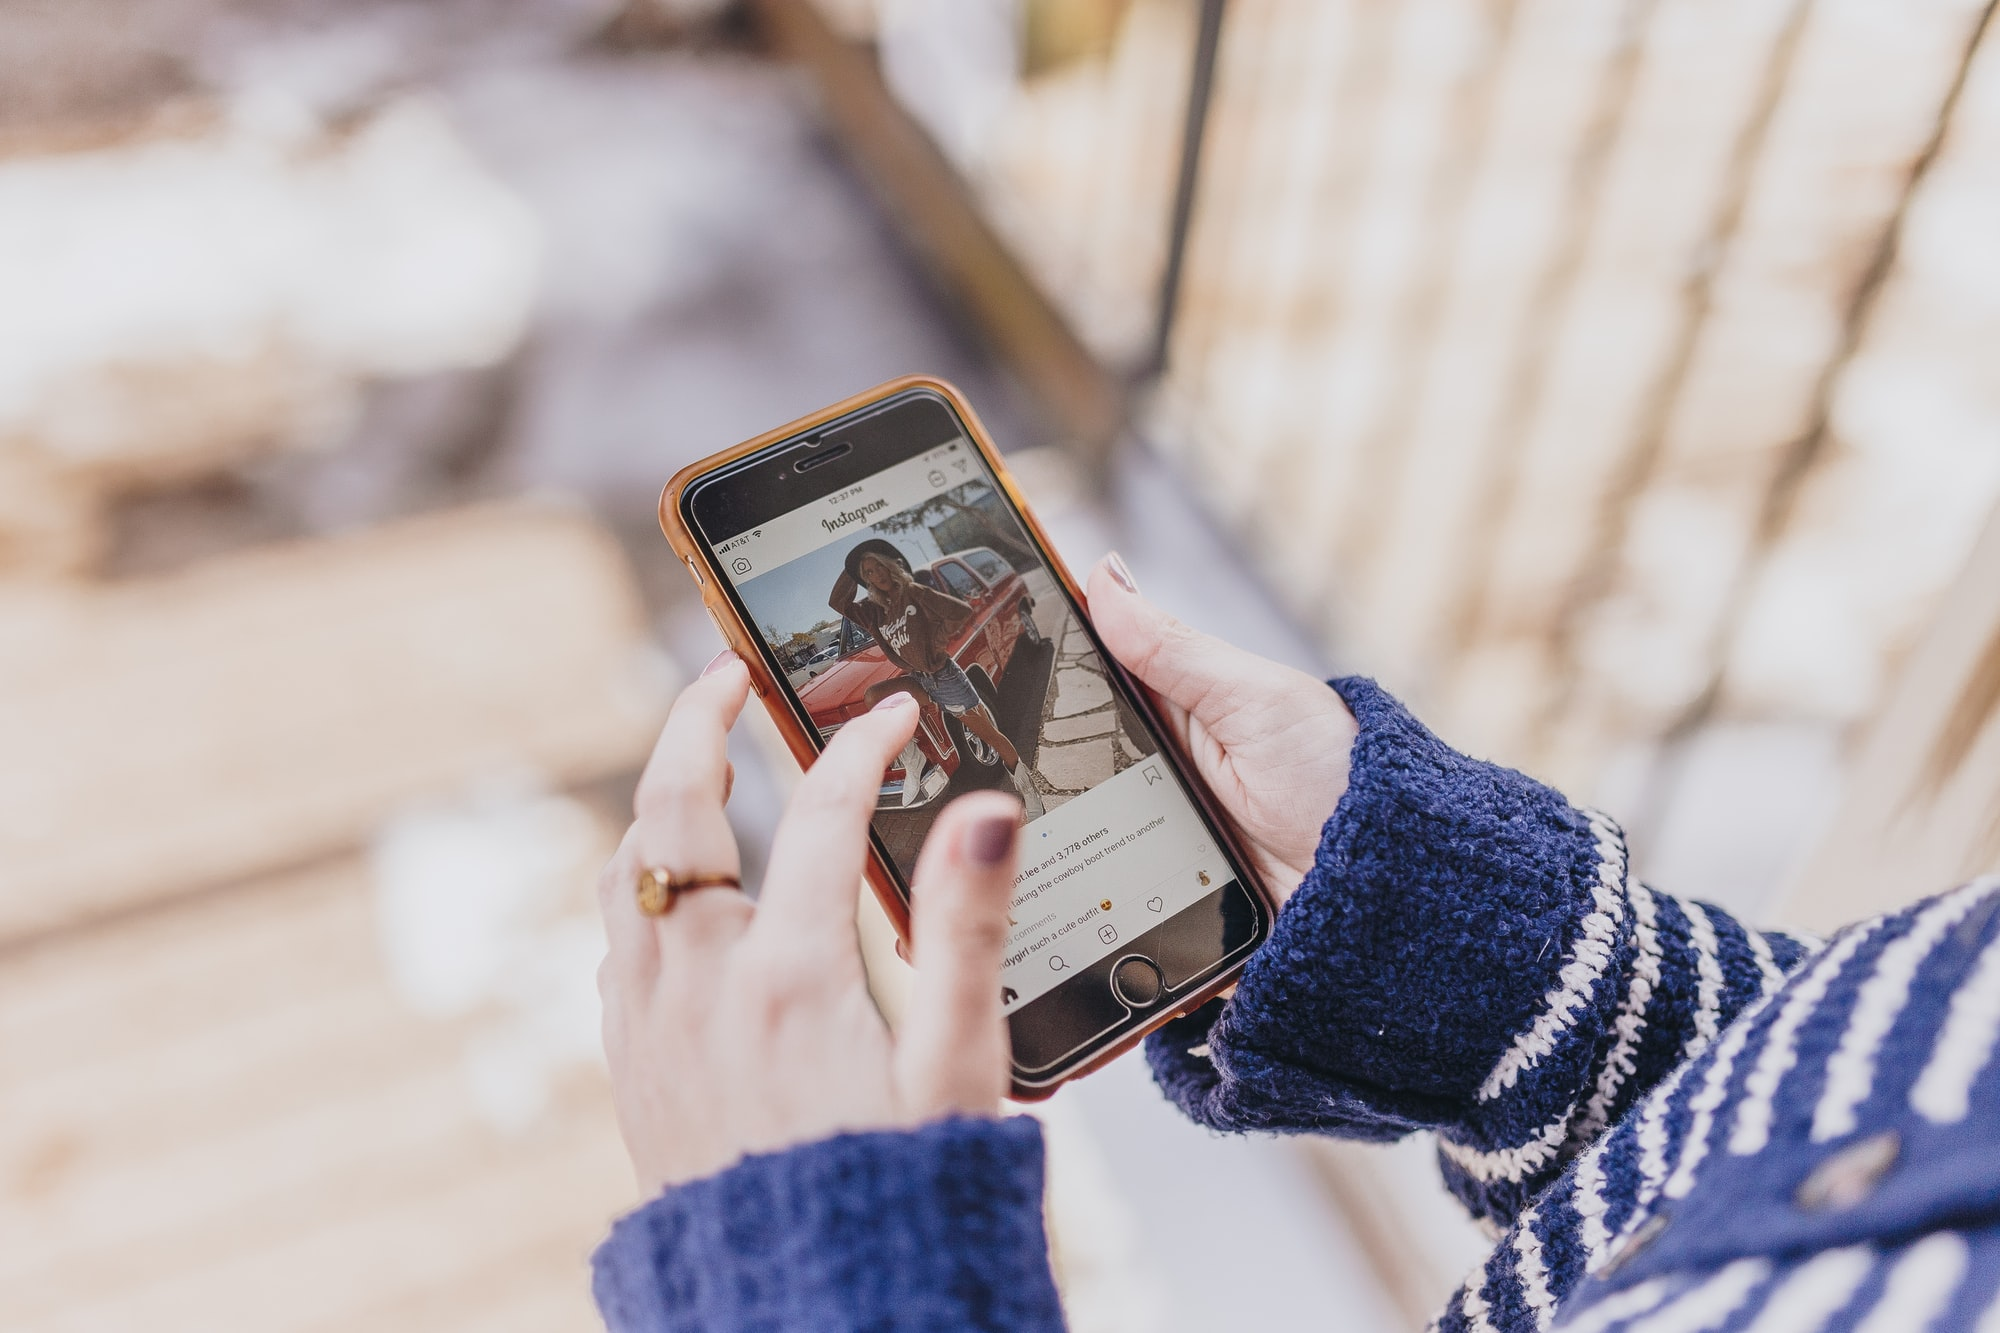 3 ways to stalk on Instagram or view Instagram anonymously